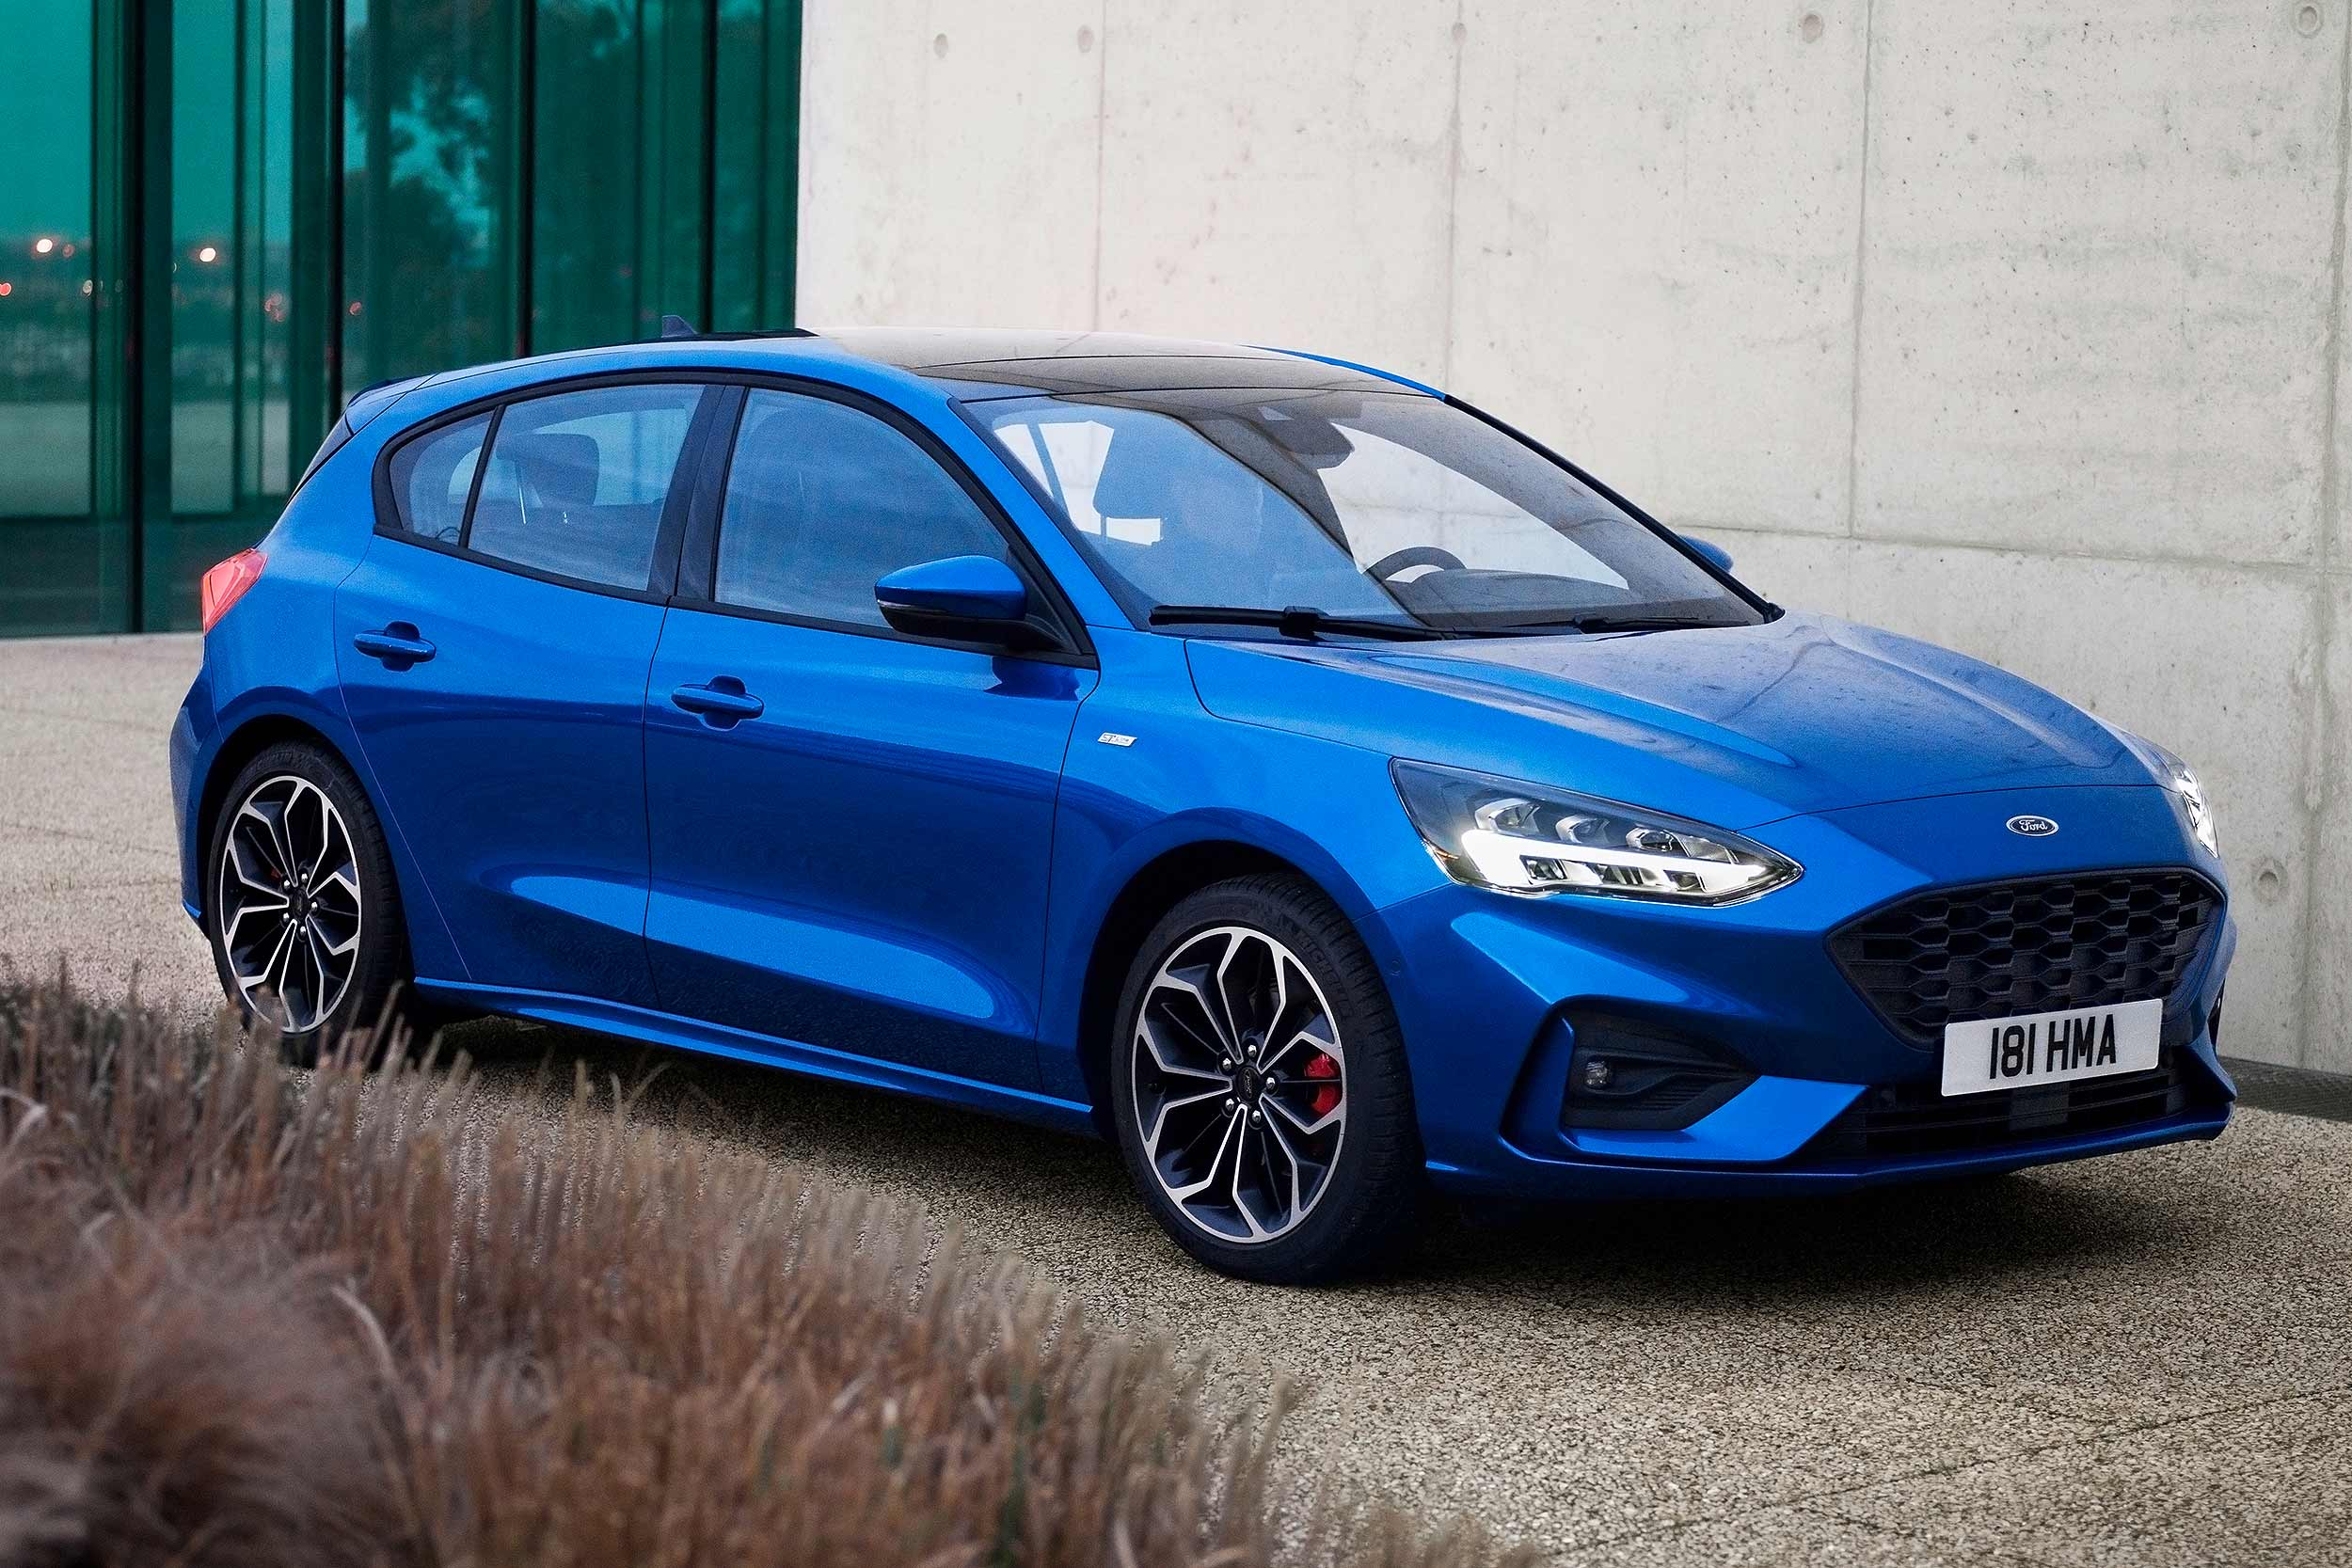 Allnew 2018 Ford Focus Revealed In London  Motoring Research